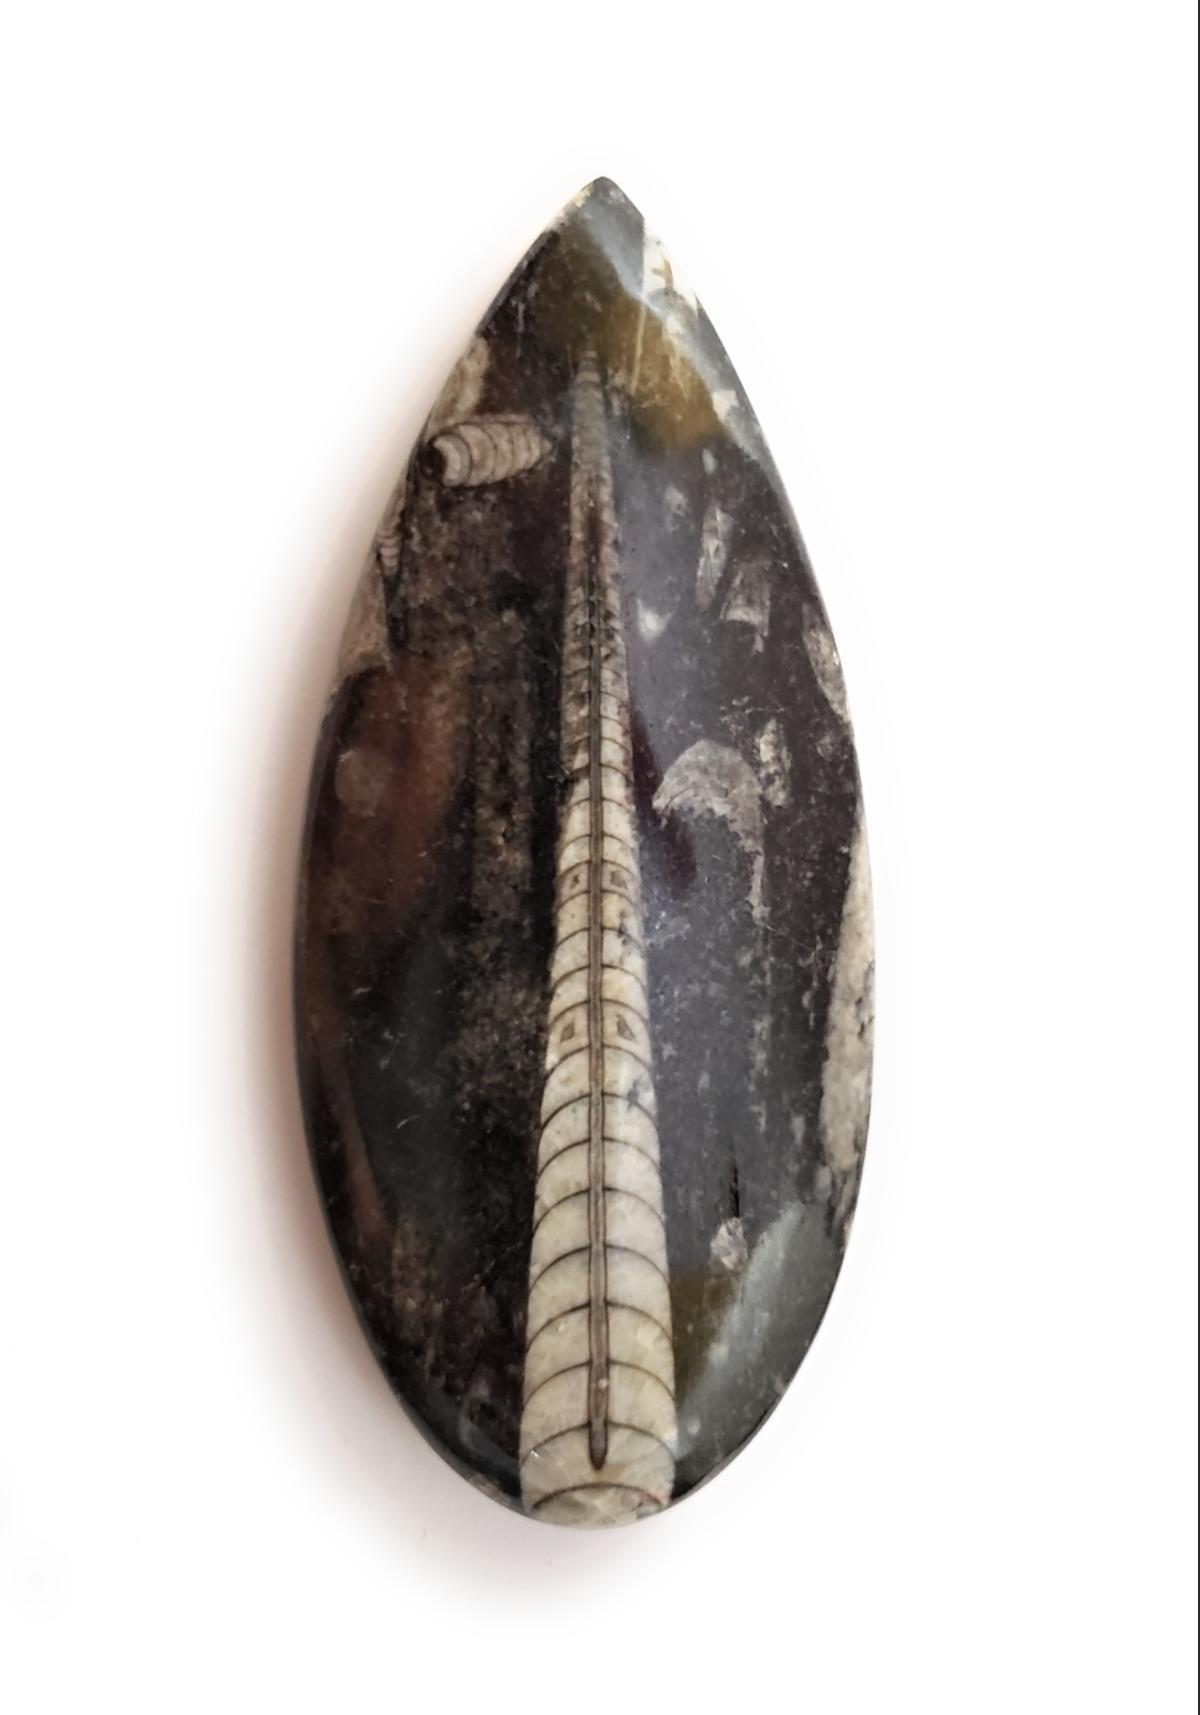 """(Please tap or click on the large photo above to view the entire image) -- Genuine 4.5"""" Polished Orthoceras Fossil. This fossil was found in Morocco and has been smoothed and polished on one side for a beautiful shine. This fossil is approximately 450 million years old!"""